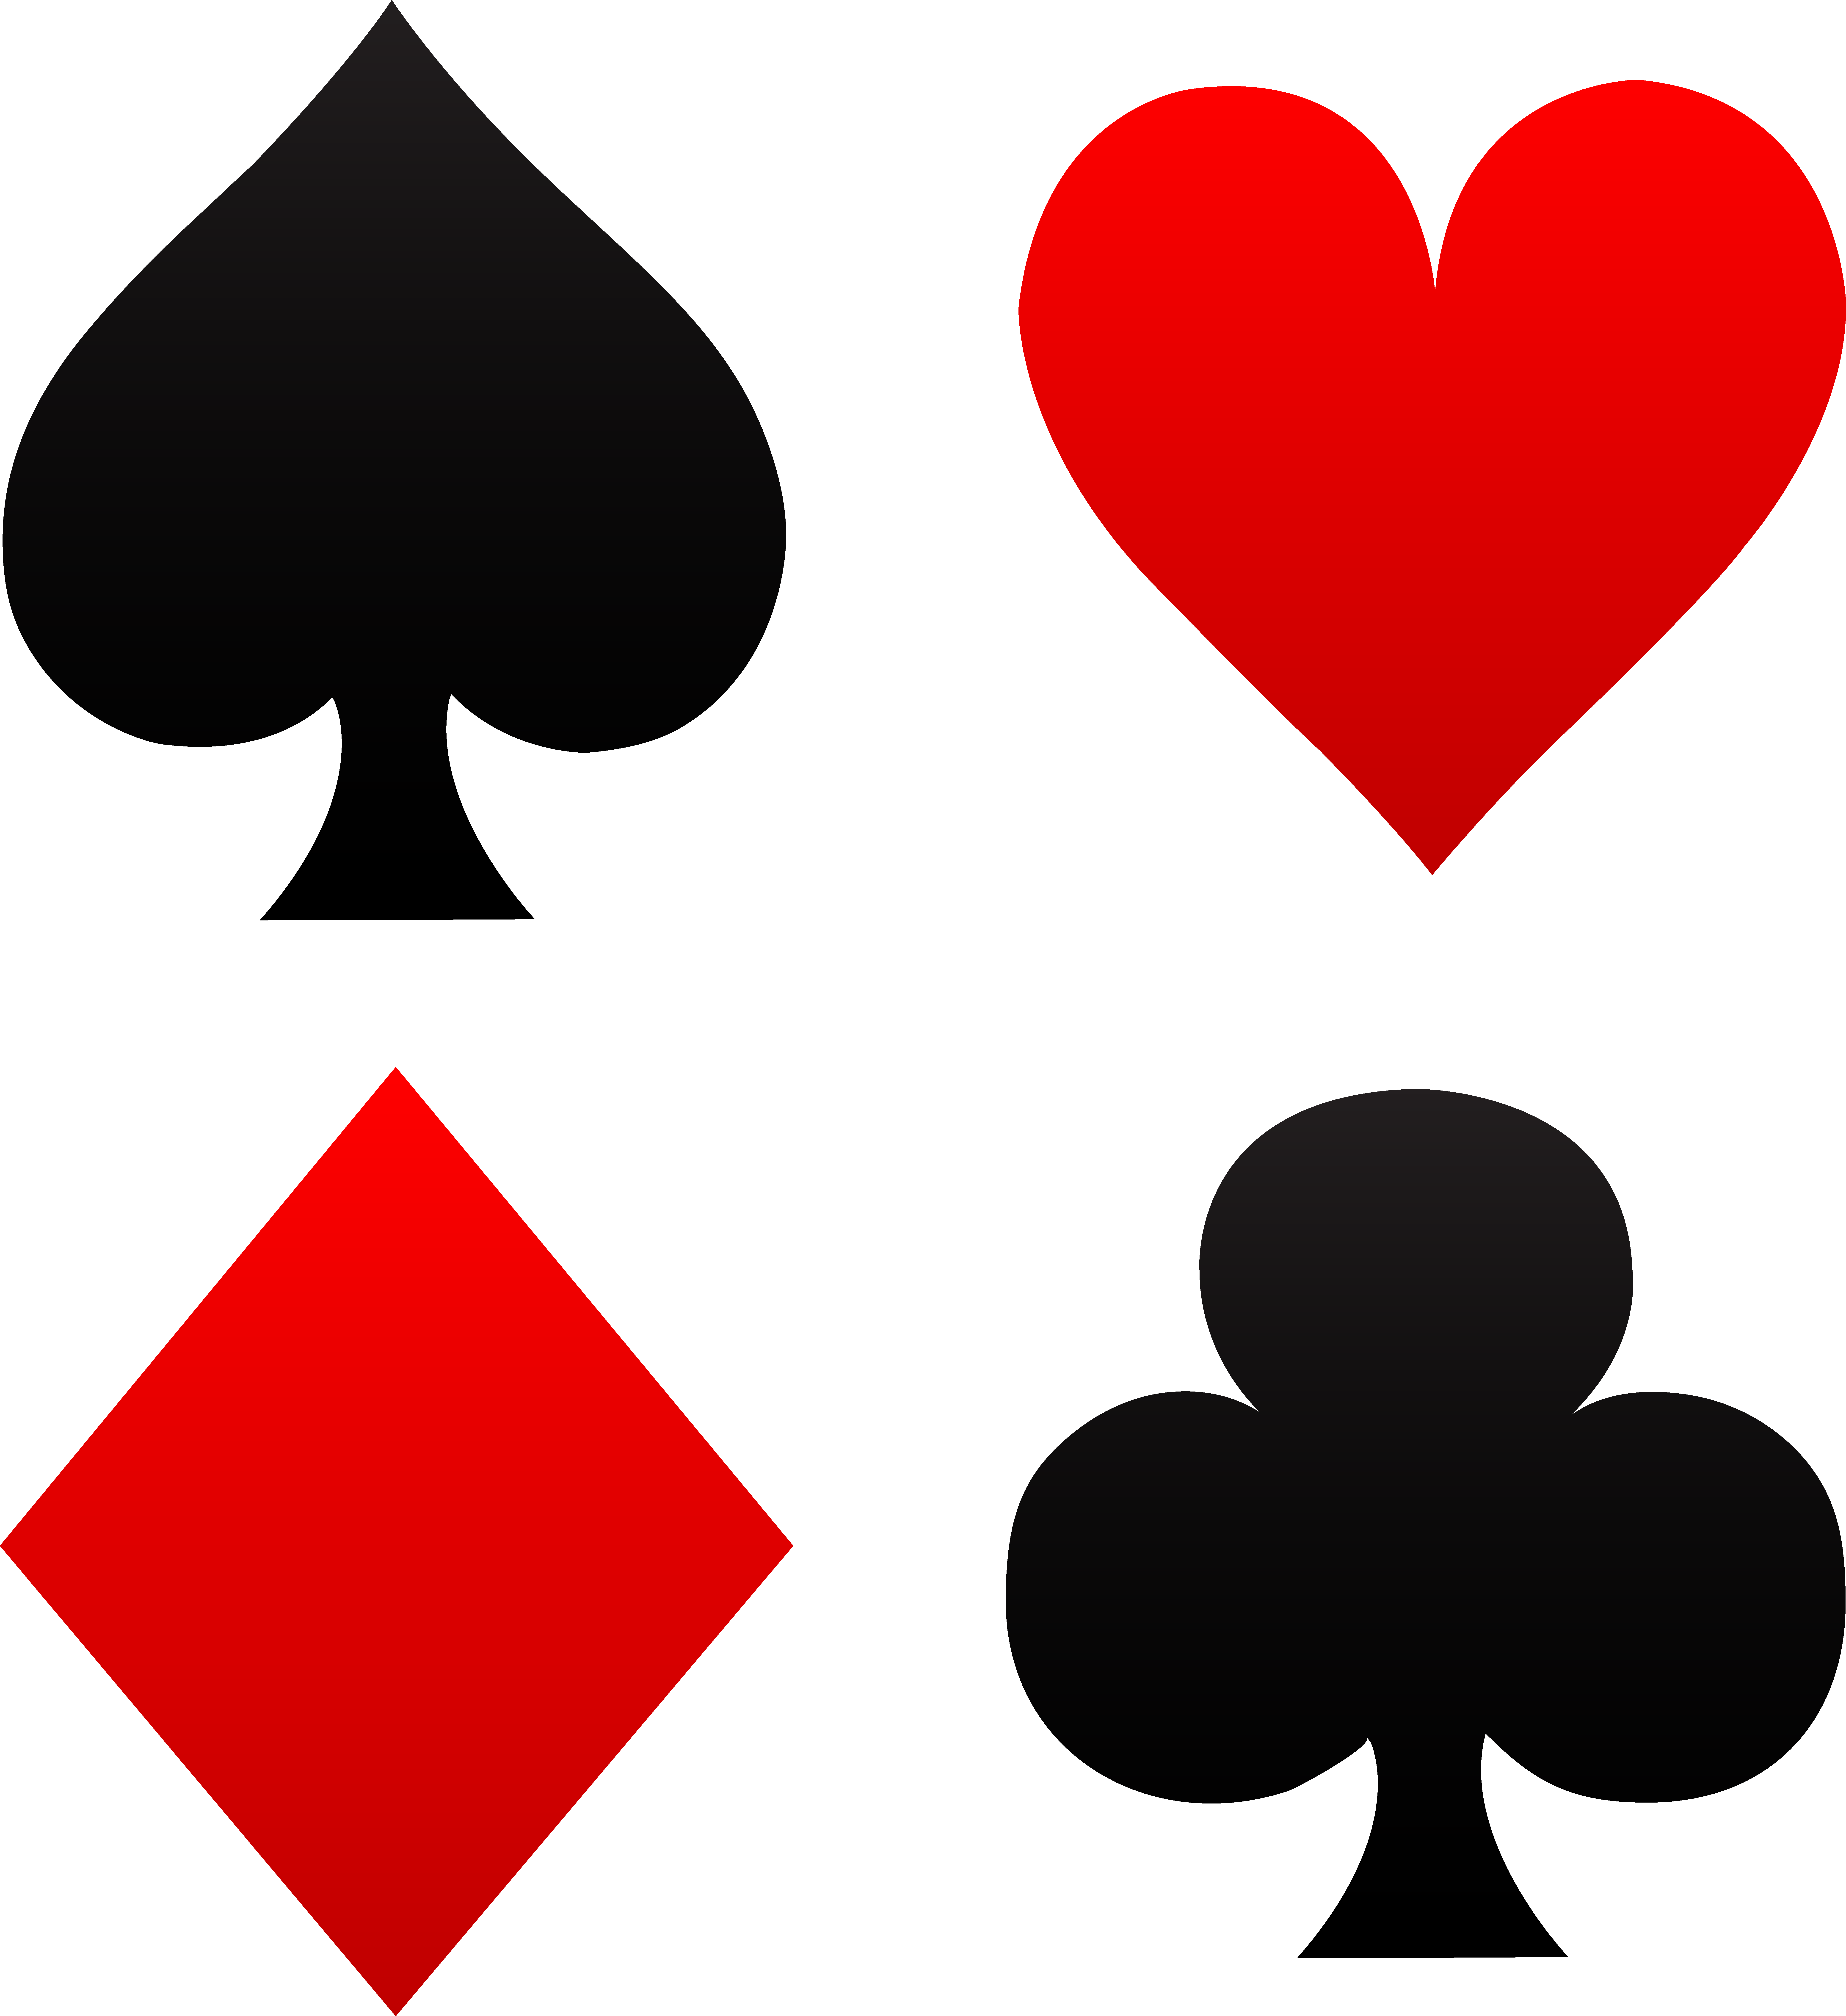 Playing card symbols all things groom pinterest playing cards playing card symbols biocorpaavc Choice Image